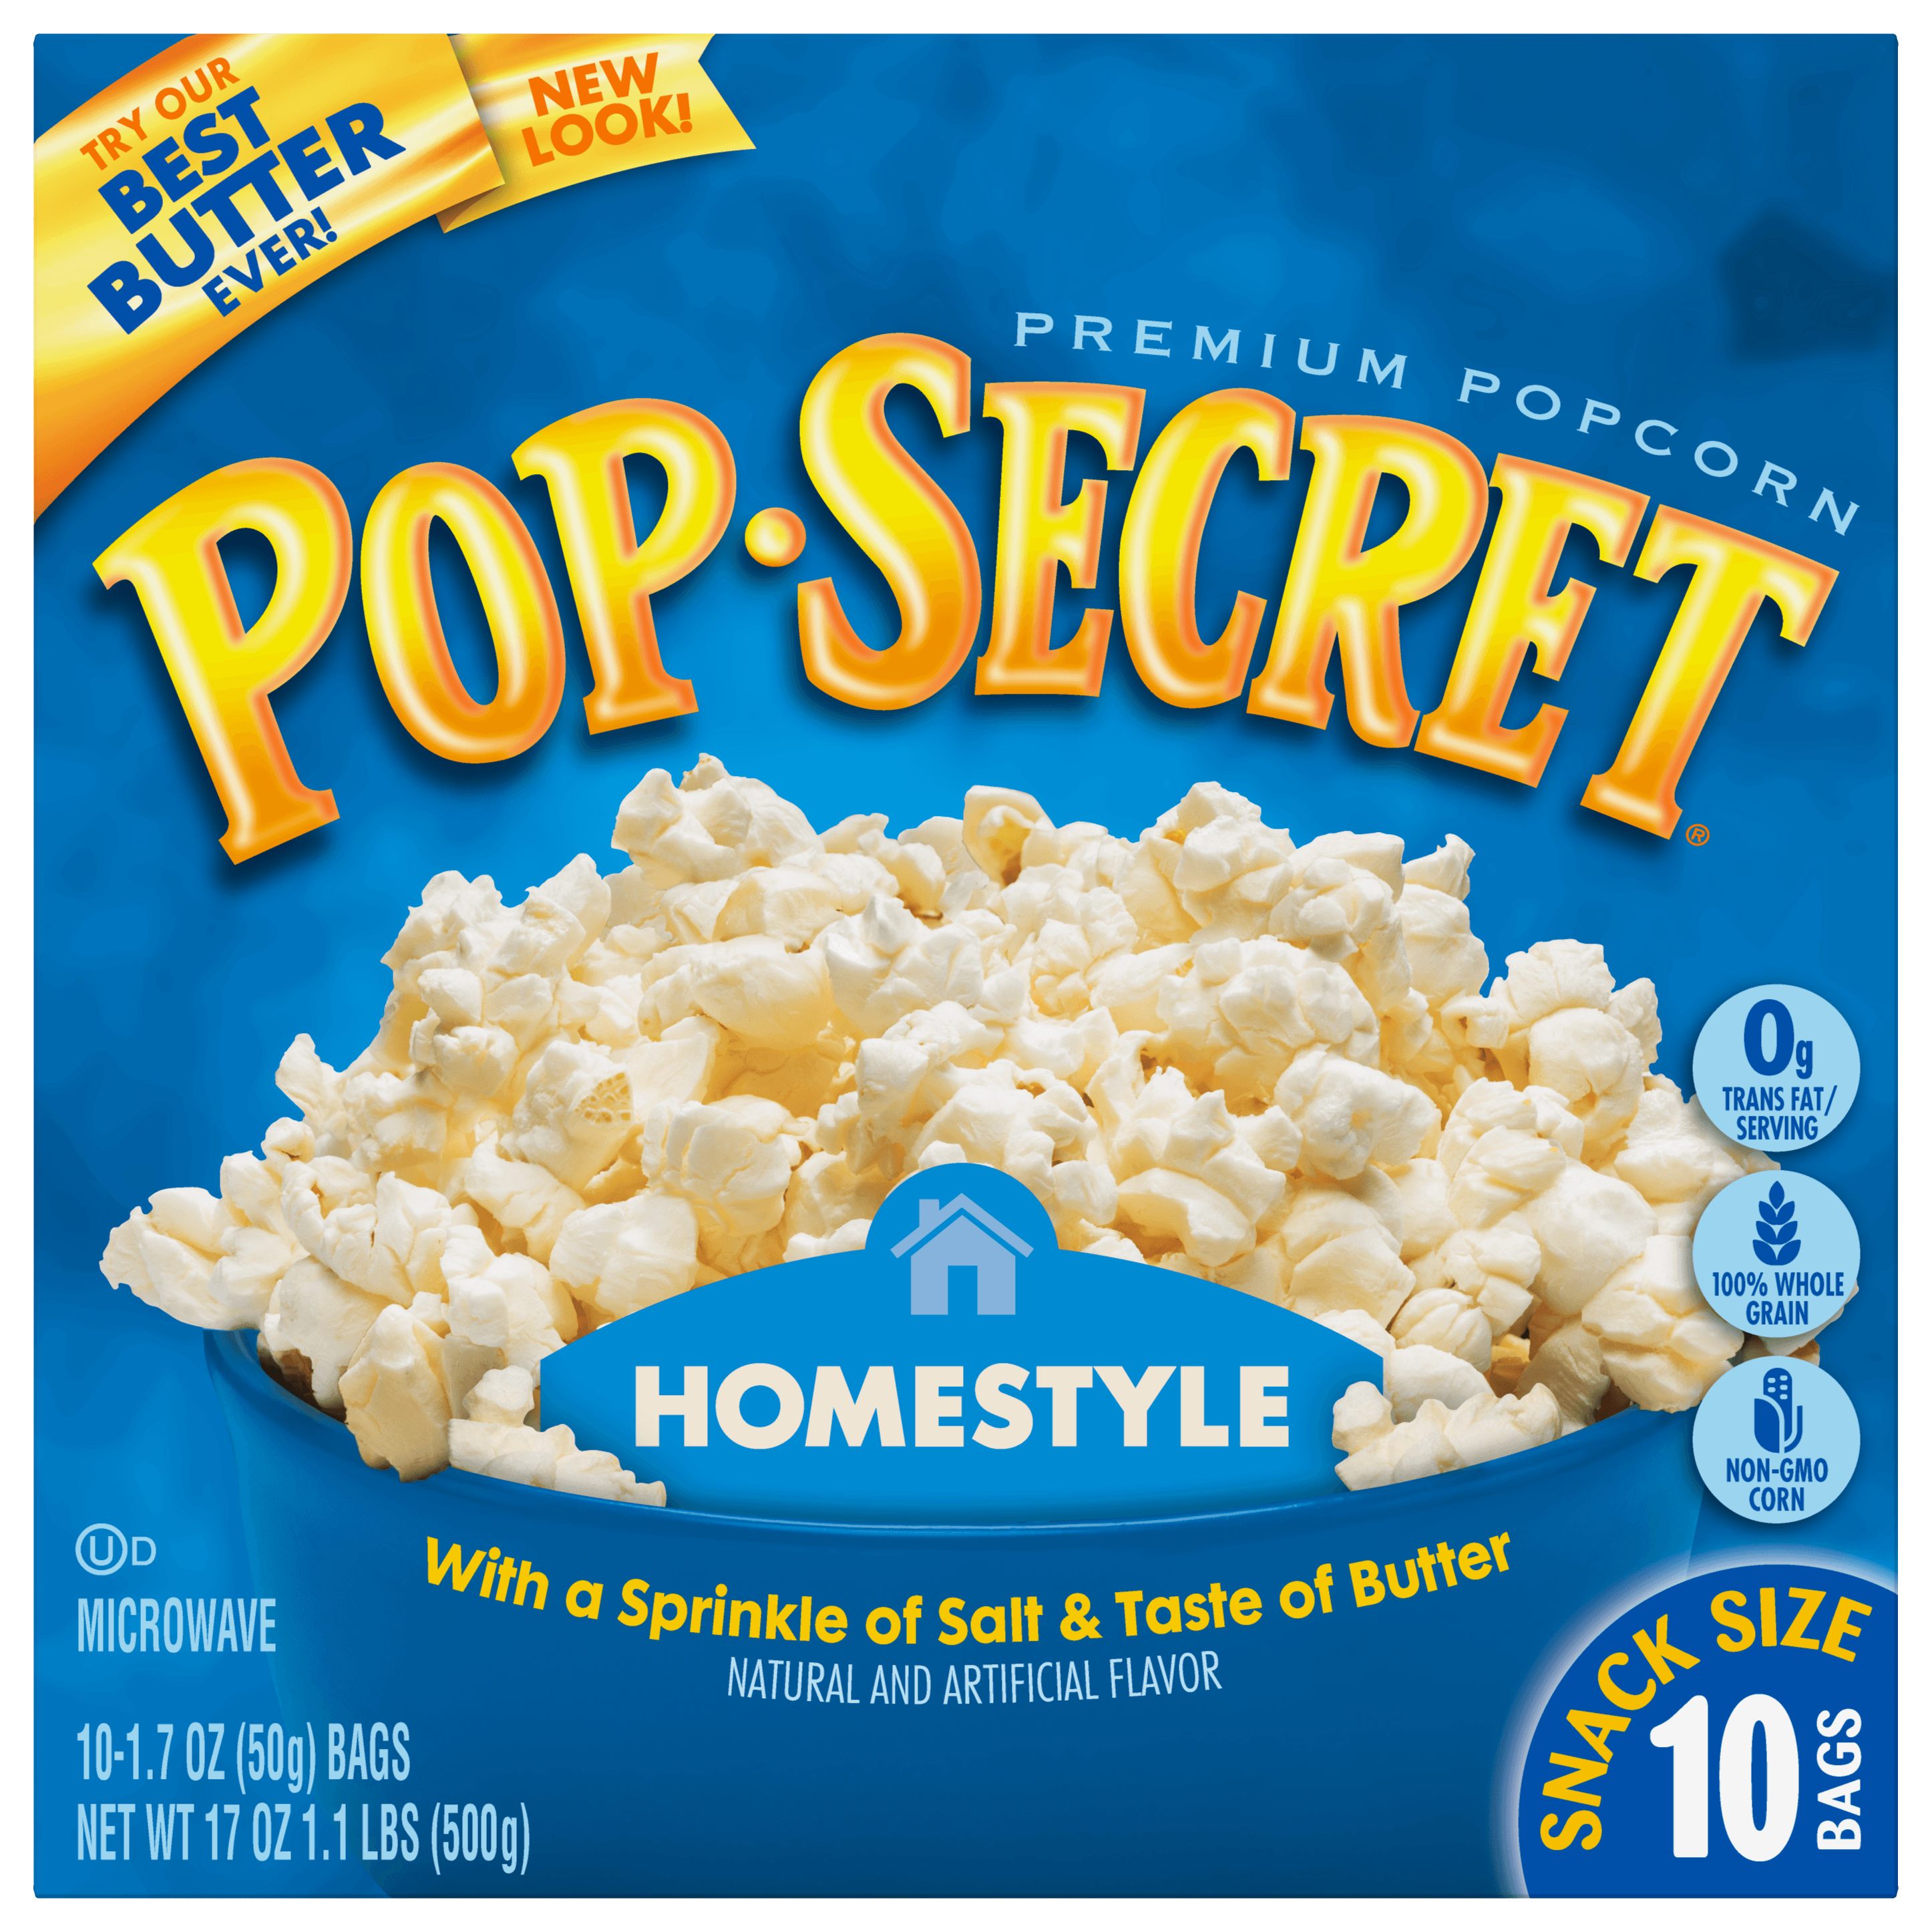 Pop Secret Homestyle Microwave Popcorn, Snack Size 1.7 oz Bags, 10 Count